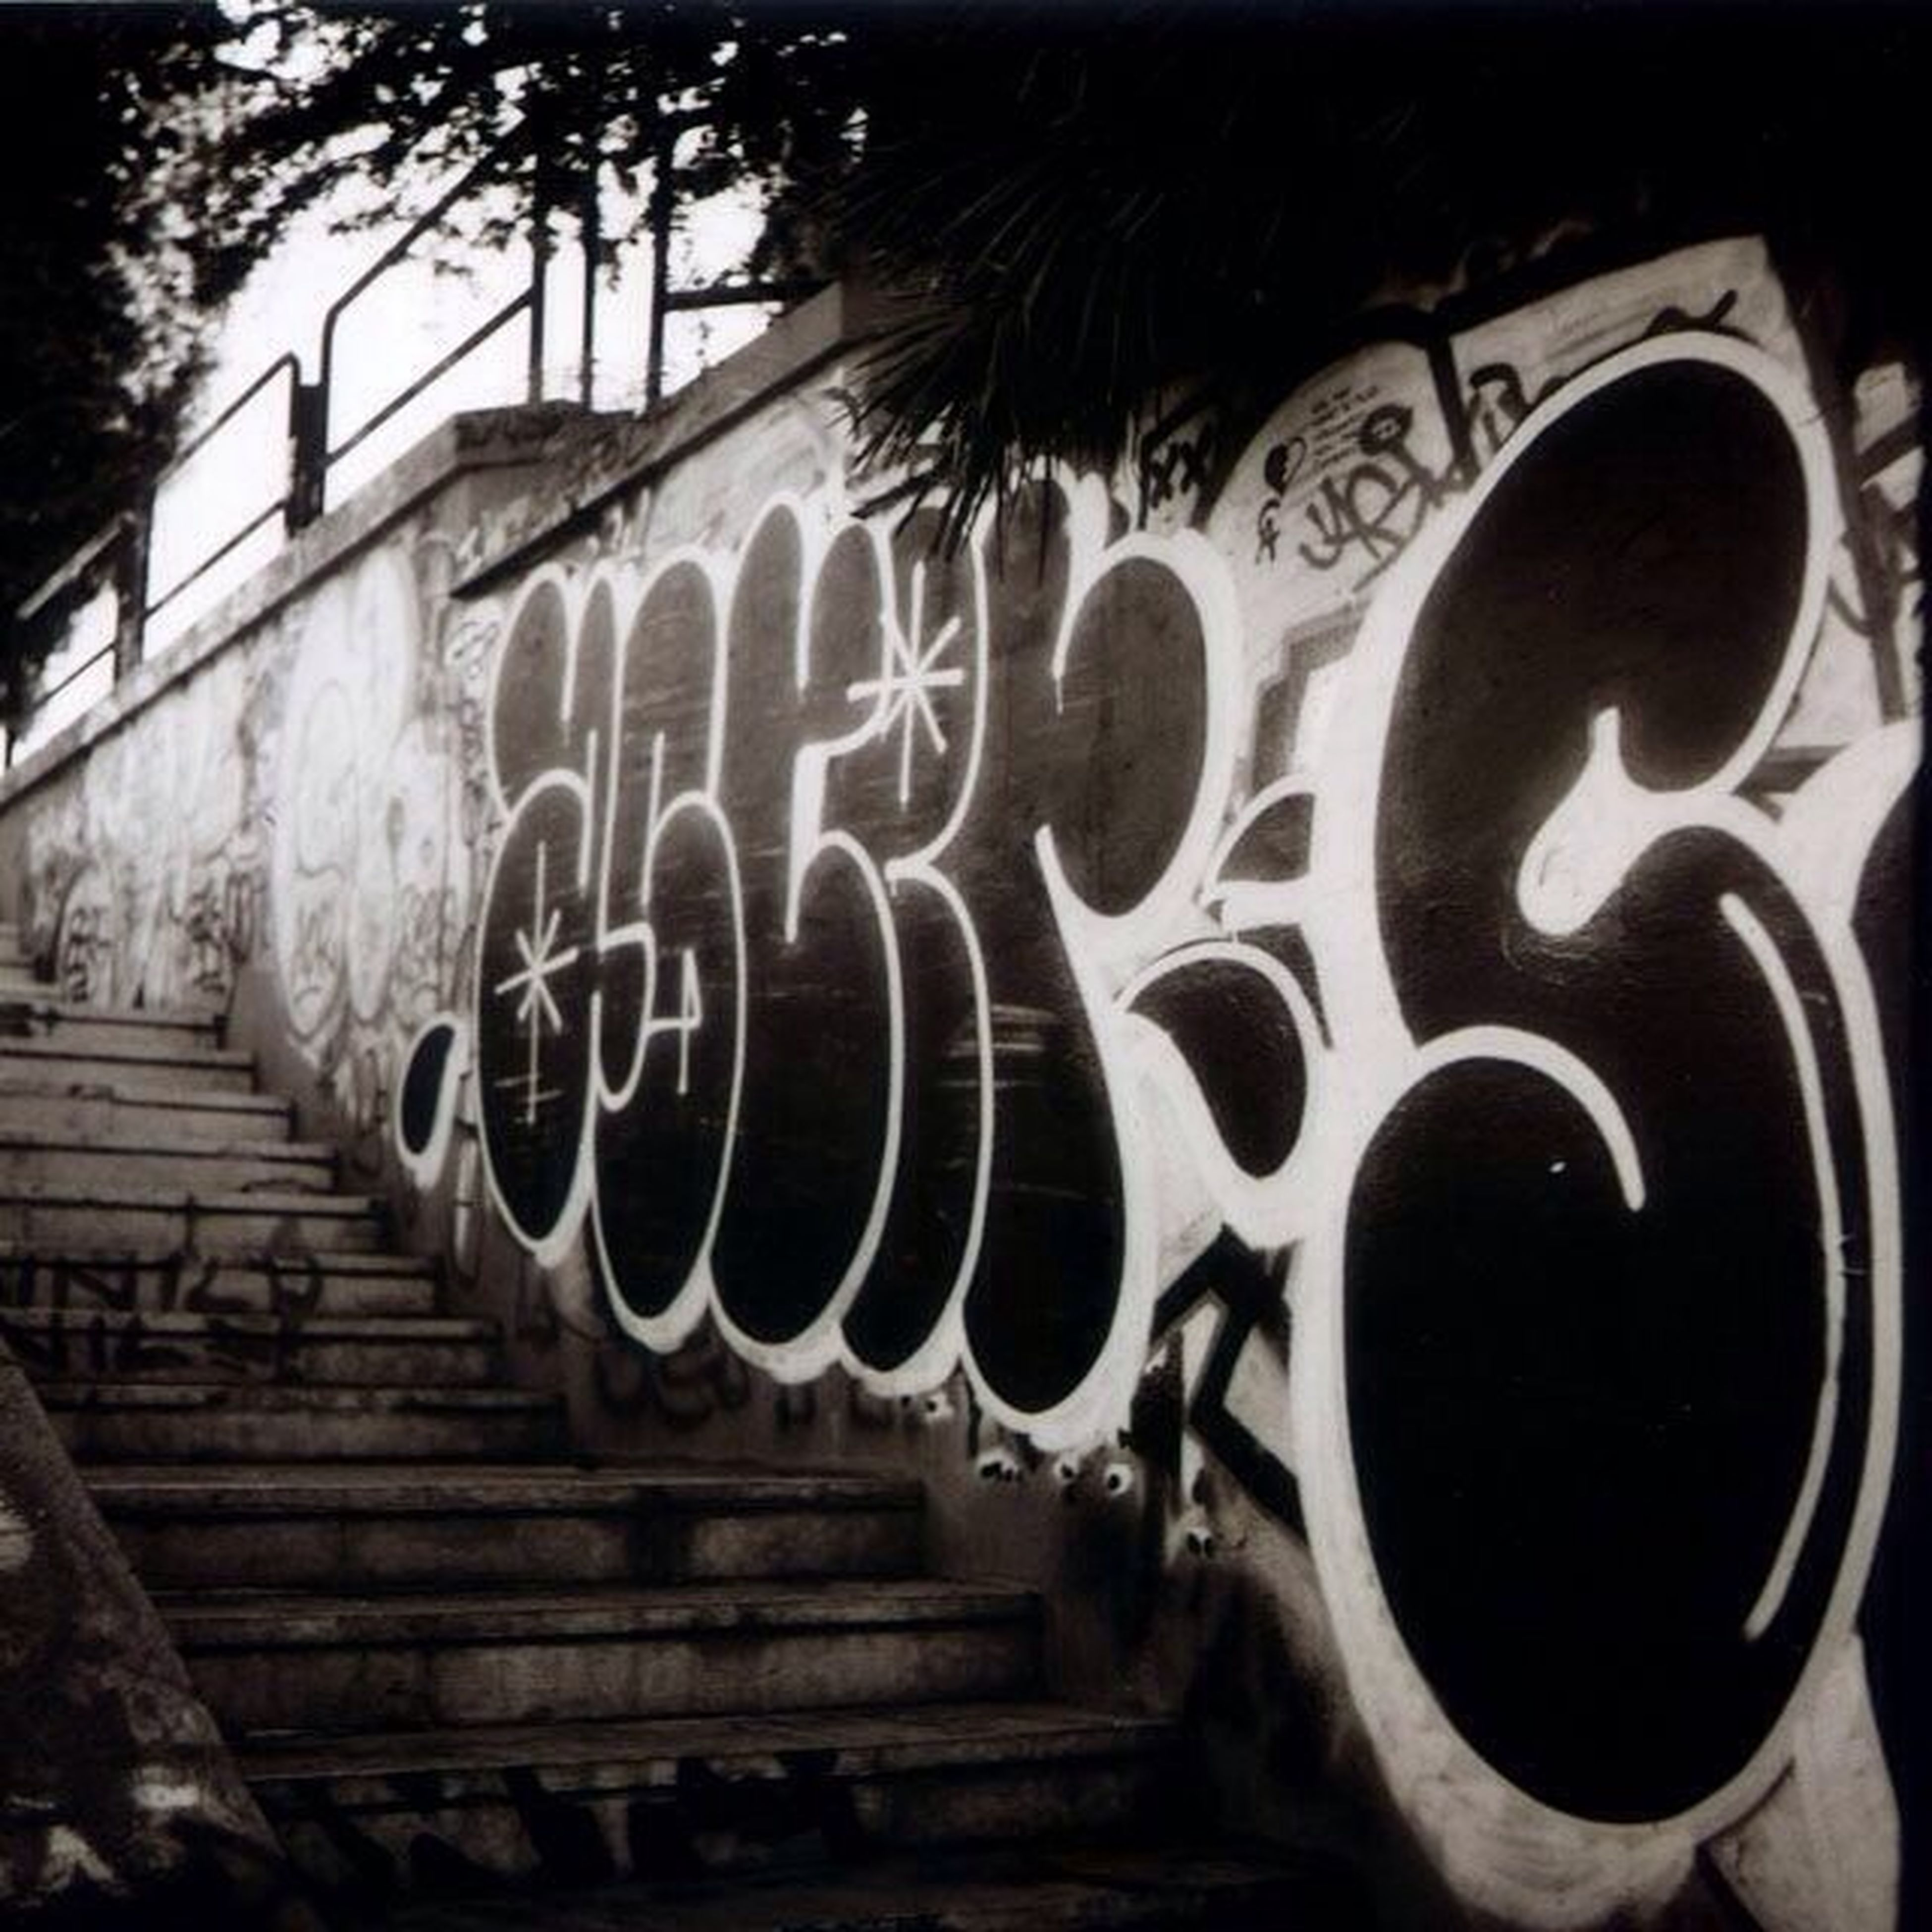 steps, built structure, architecture, railing, staircase, outdoors, steps and staircases, tree, day, building exterior, one person, close-up, graffiti, transportation, sunlight, old, part of, wall - building feature, pattern